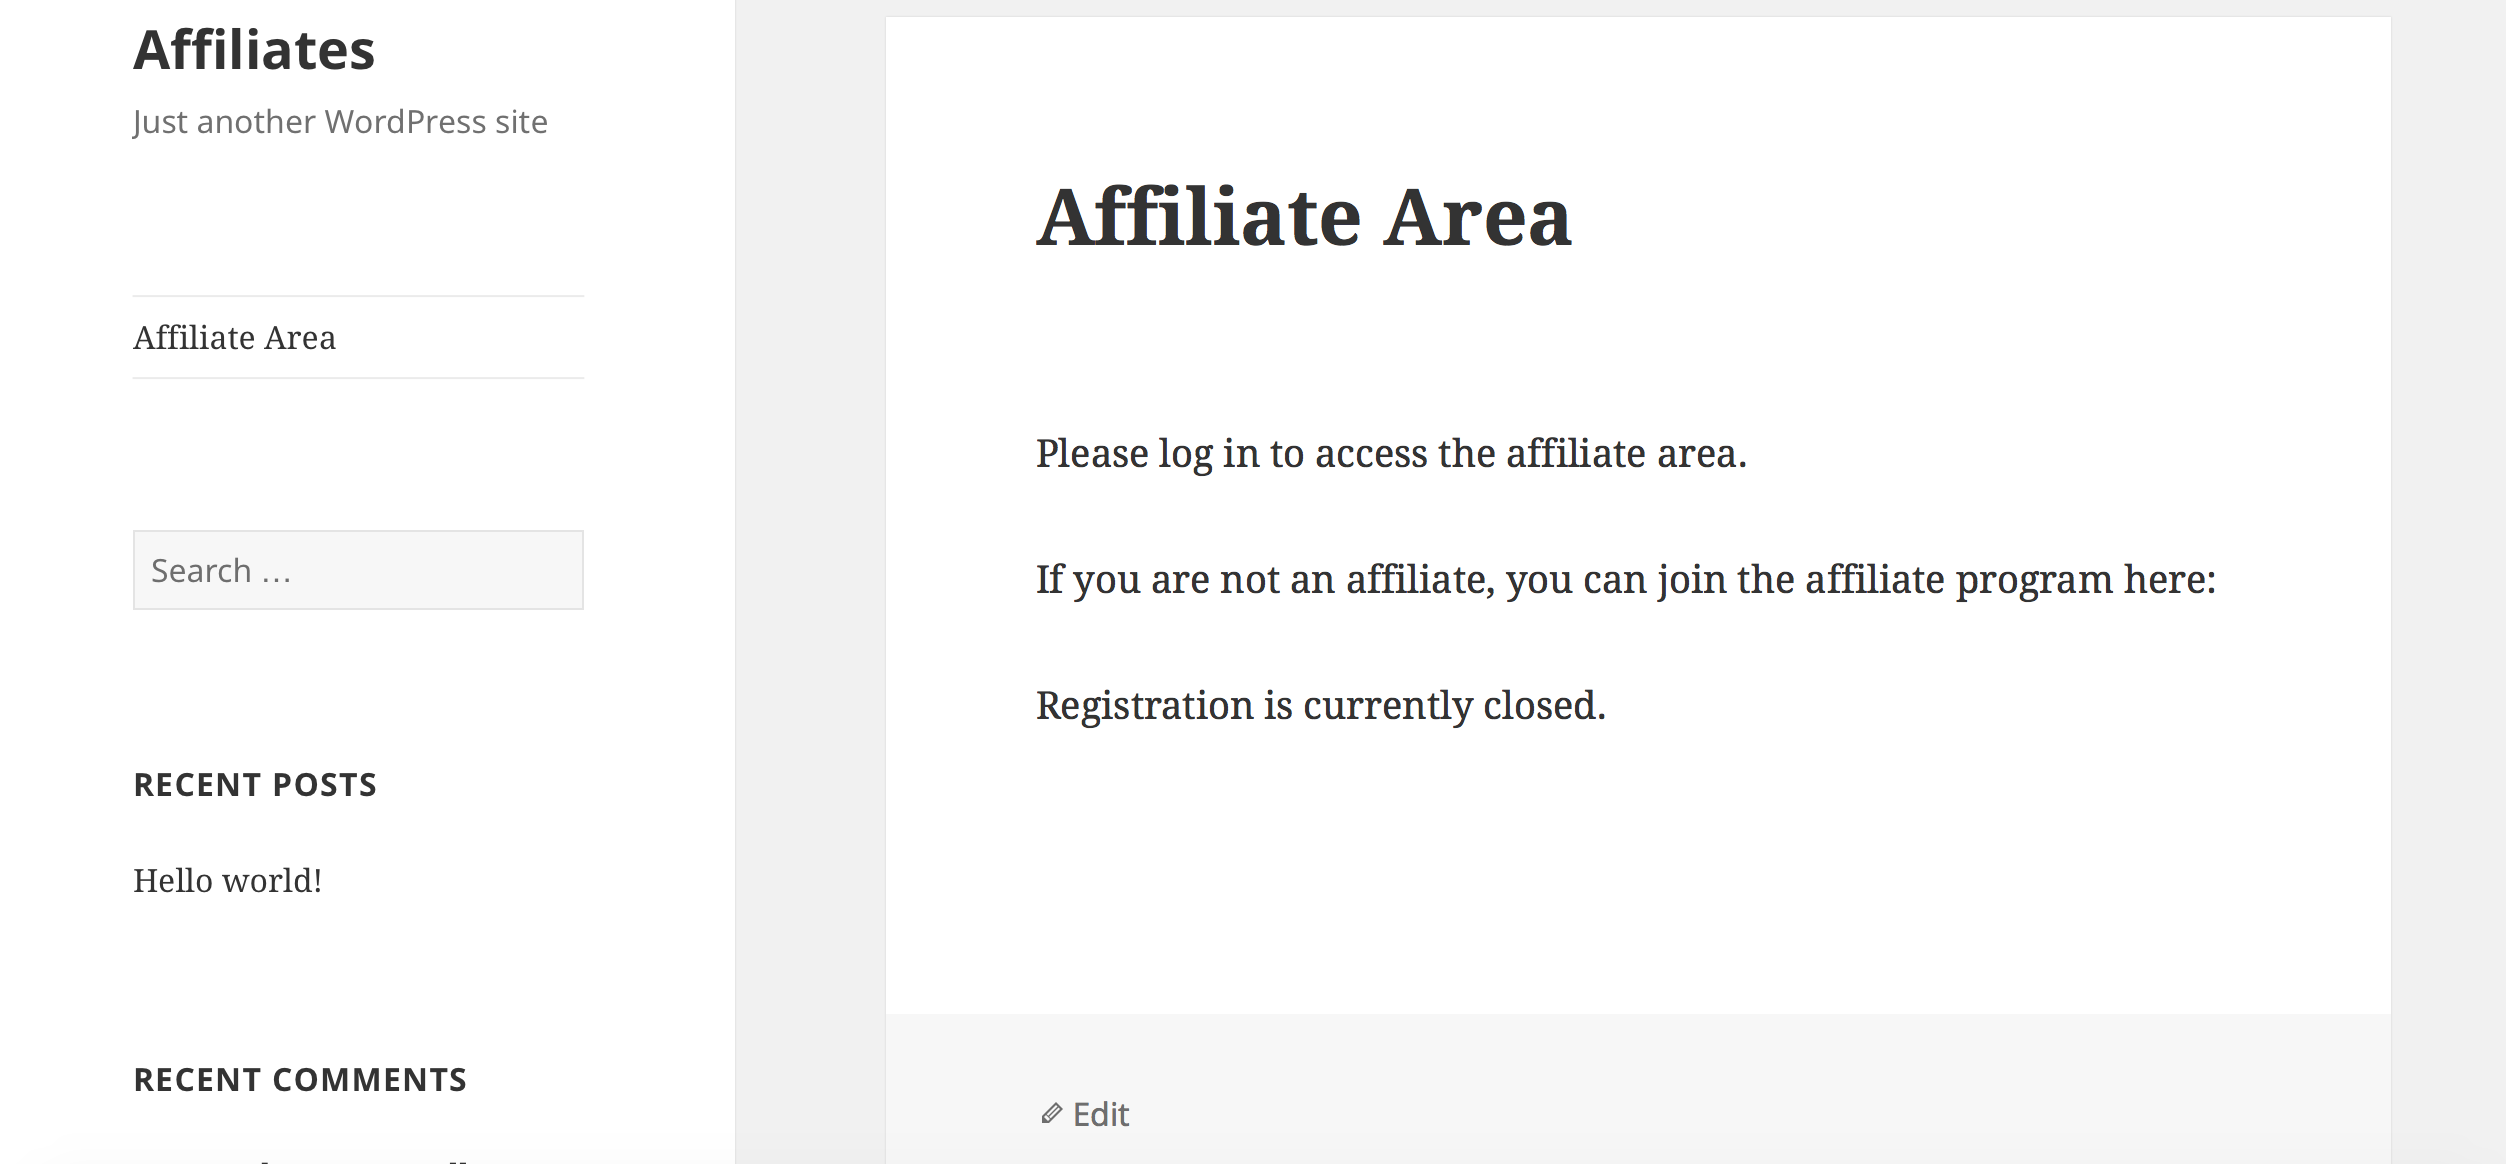 affiliate area view page